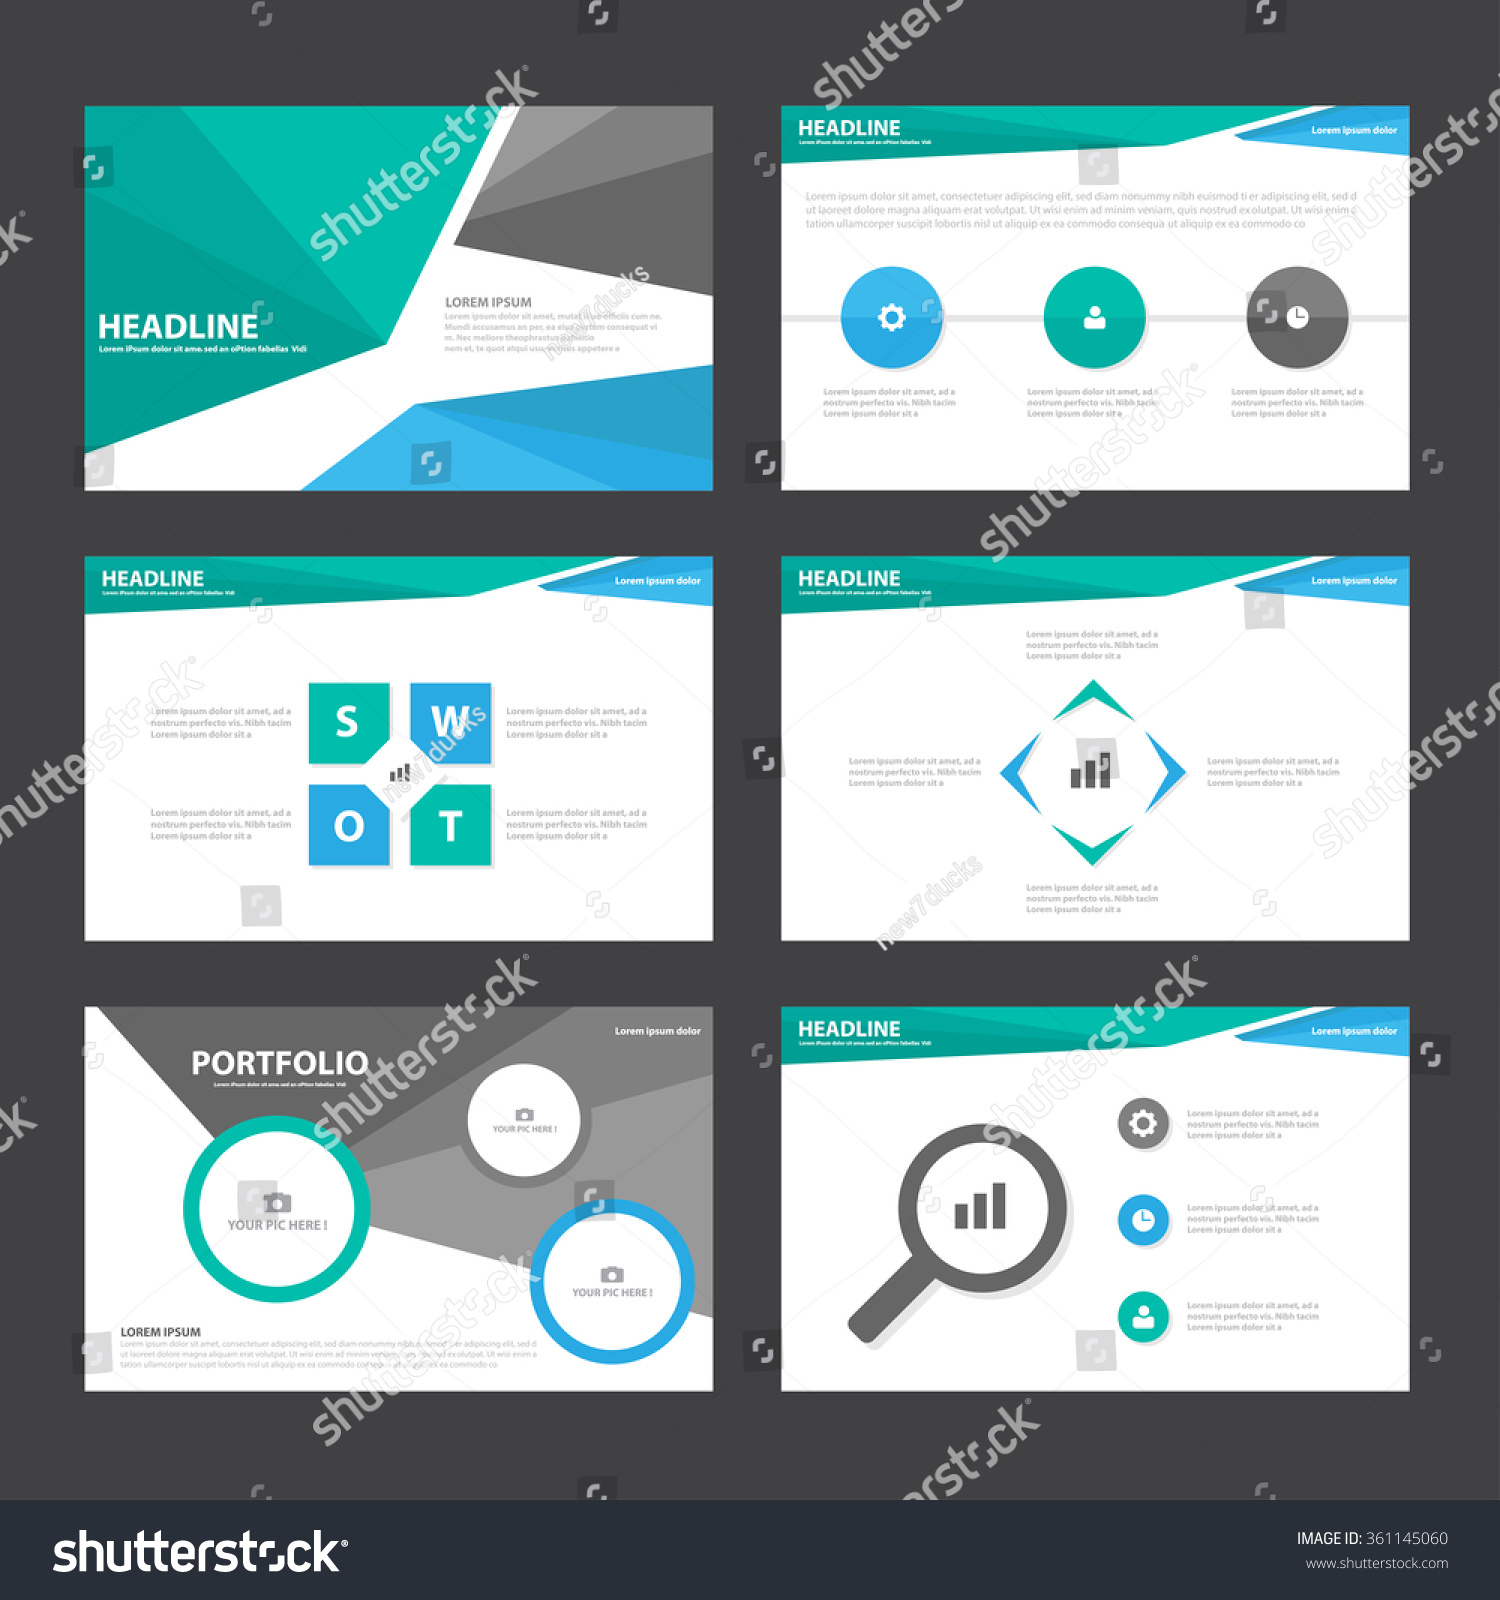 royalty-free blue green black presentation templates… #361145060, Powerpoint templates